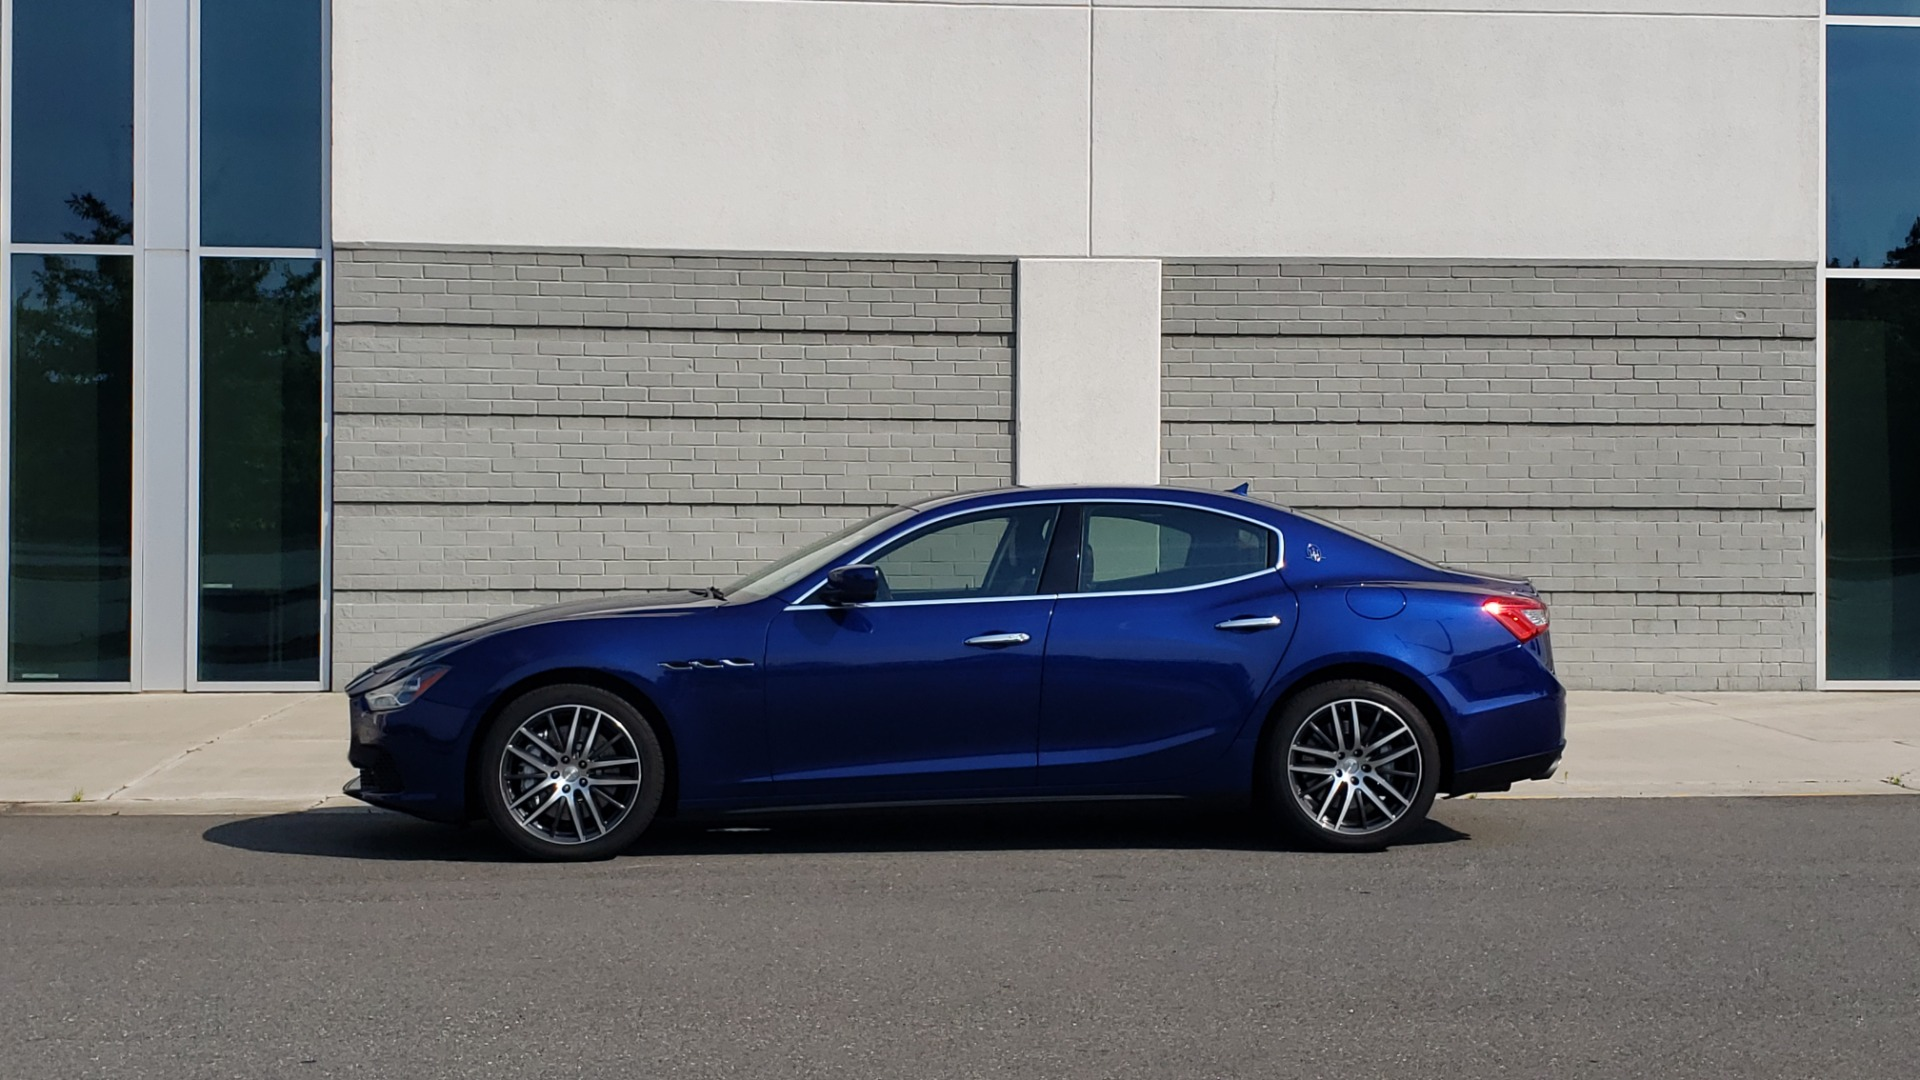 Used 2015 Maserati GHIBLI SEDAN / 3.0L V6 / 8-SPD AUTO / NAV / HTD STS / SUNROOF / REARVIEW for sale $24,495 at Formula Imports in Charlotte NC 28227 5